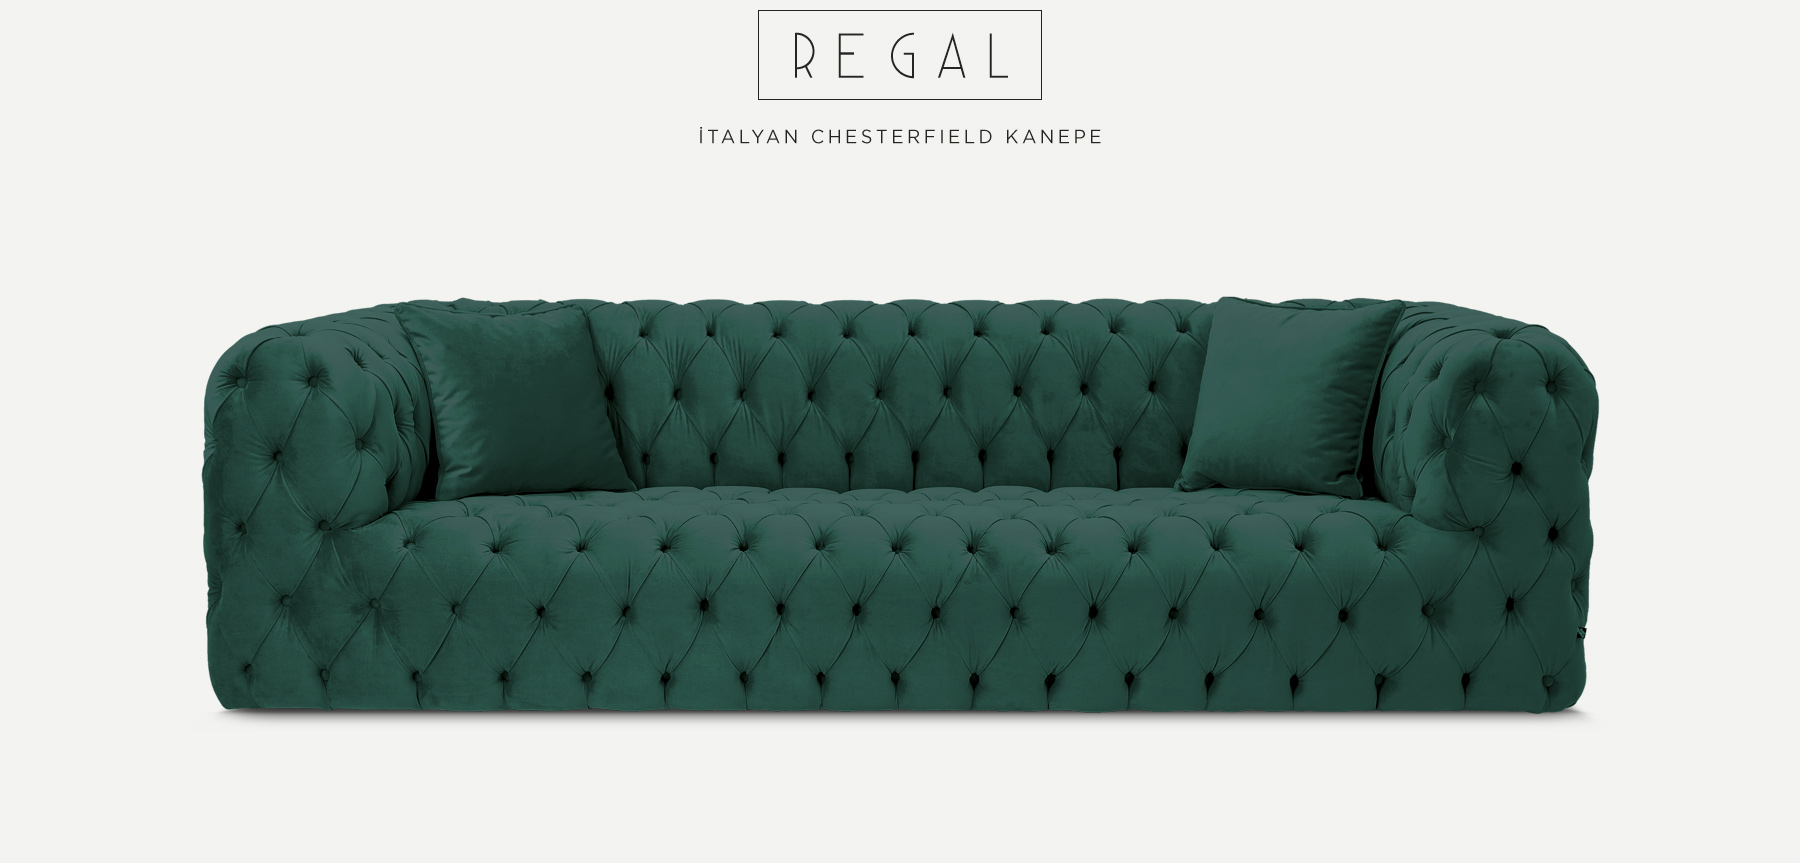 Regal Üçlü Petrol Yeşili İtalyan Chesterfield'in resmi